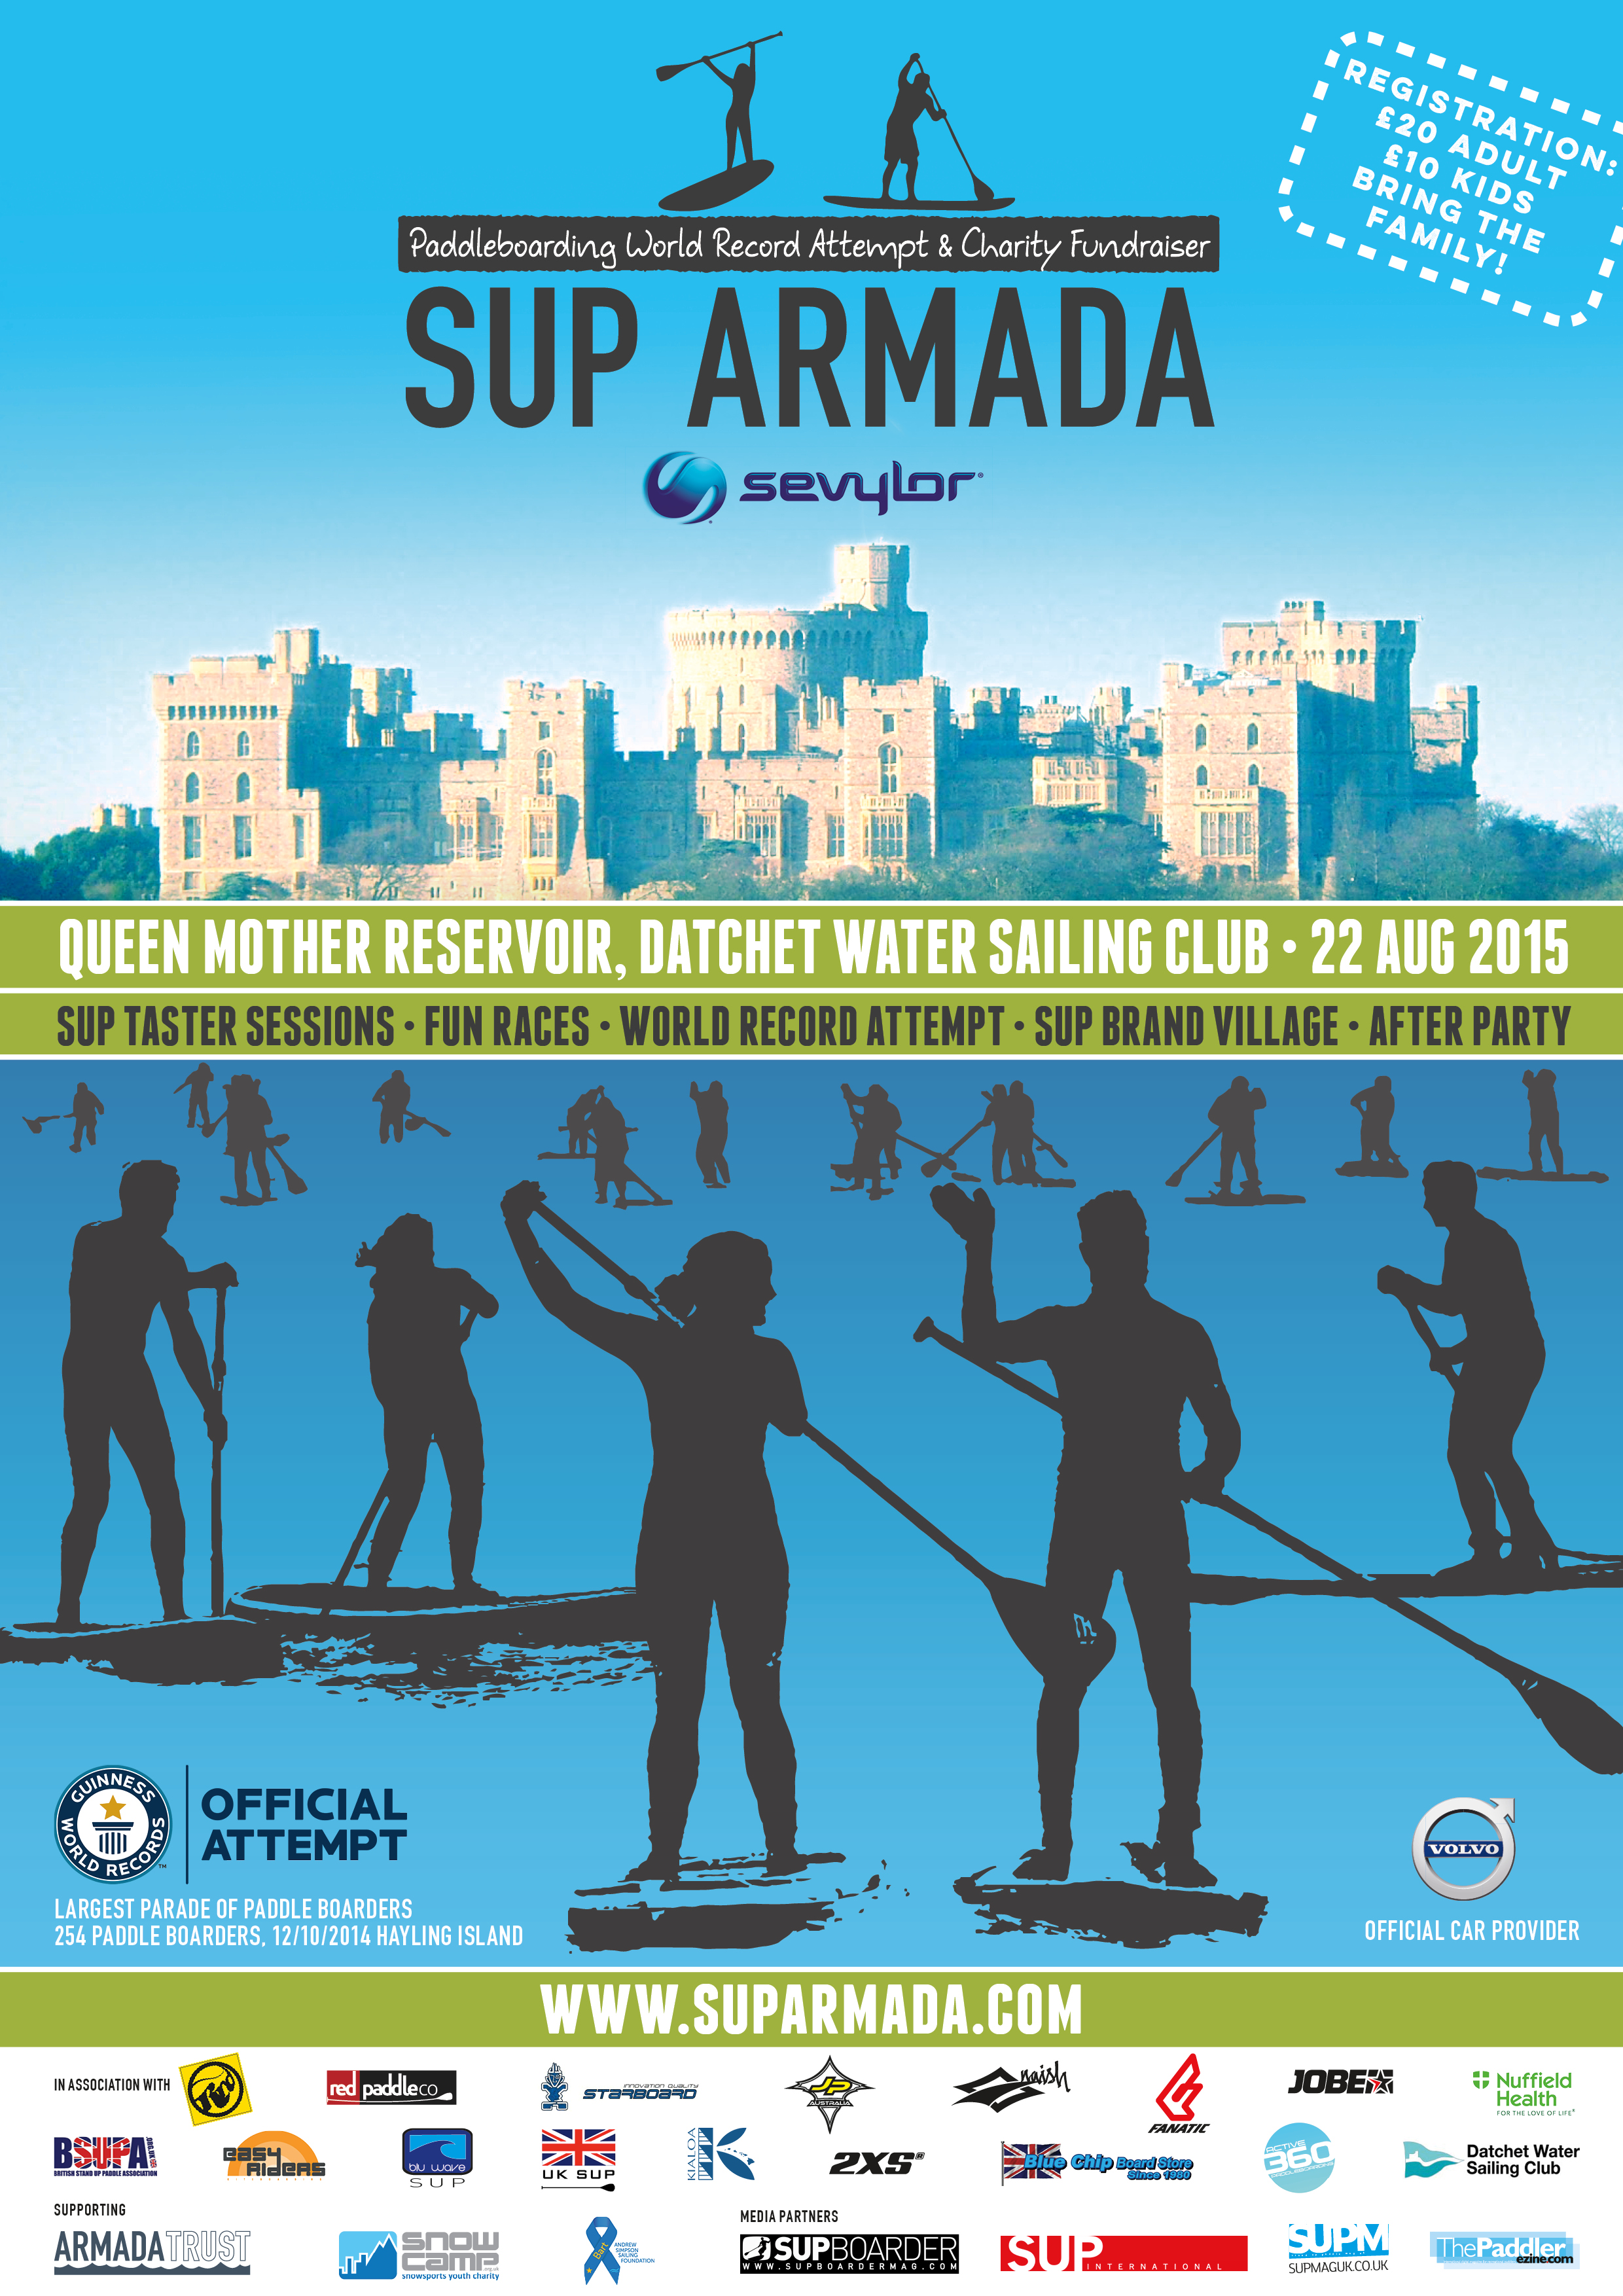 Jobe proud sponsor of the SUP Armada